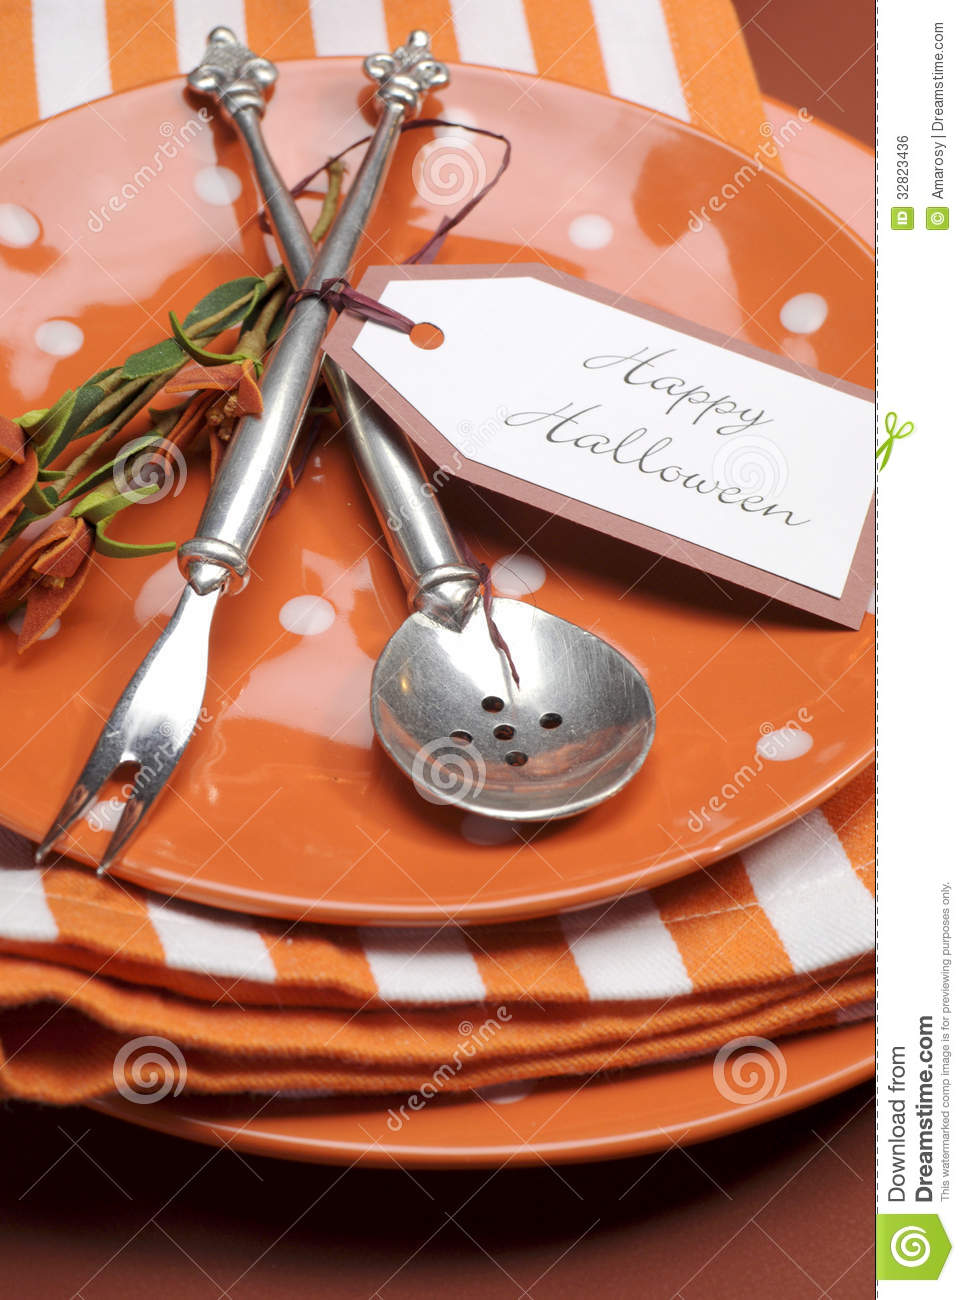 Serviette De Table Halloween Plats Oranges Heureux De Point Et De Rayures De Polka De